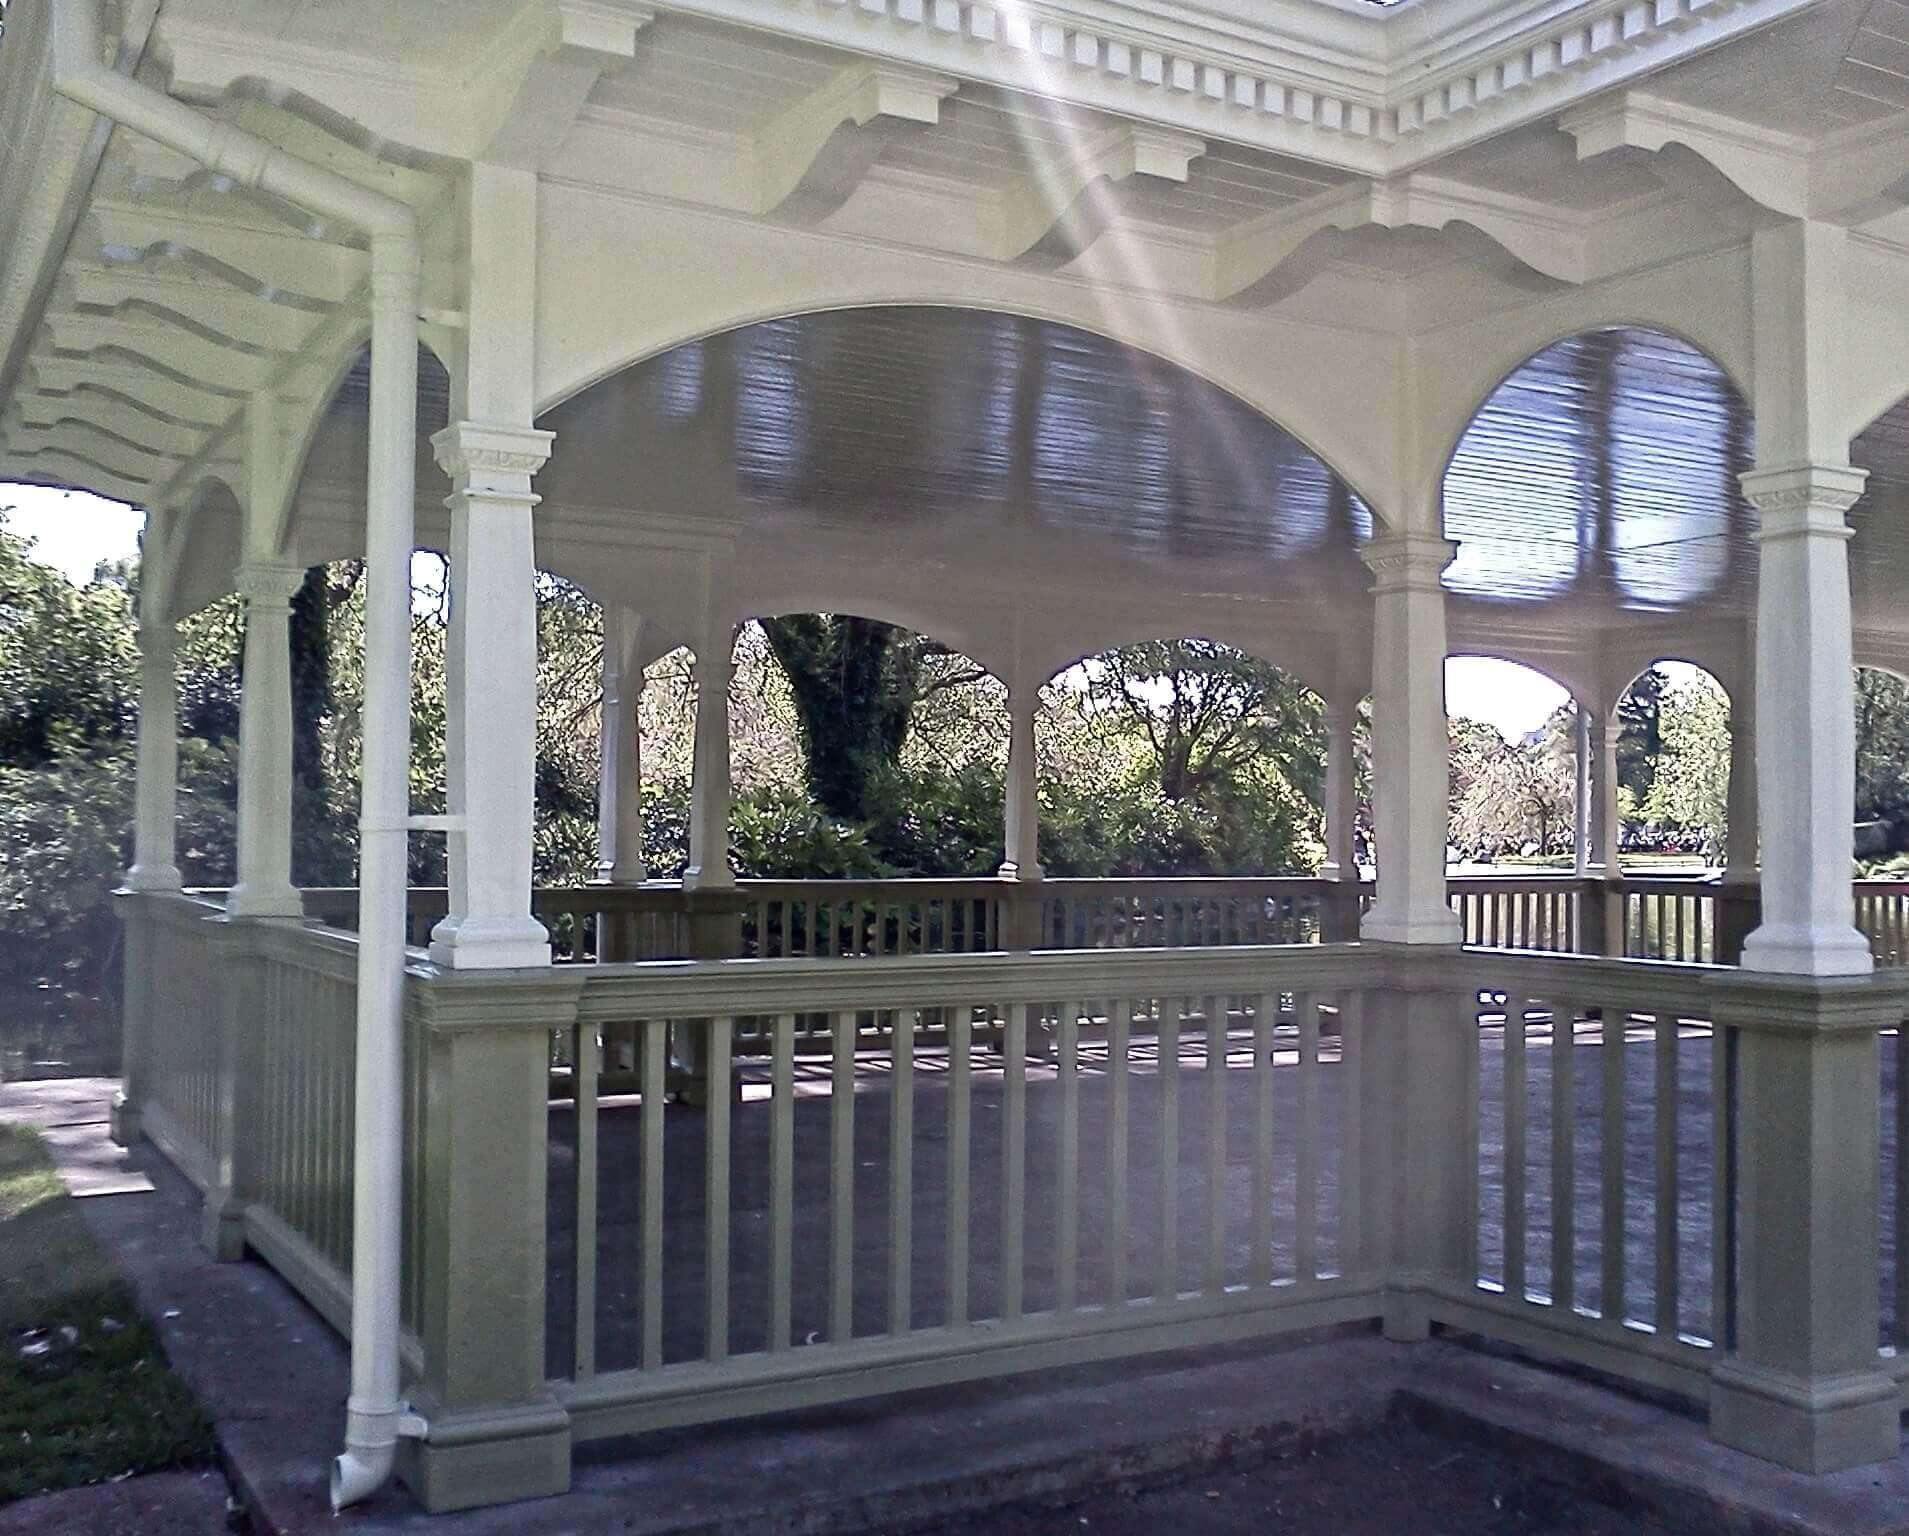 viaggiare-zaino-in-spalla-dublino-st-stephens-green-gazebo